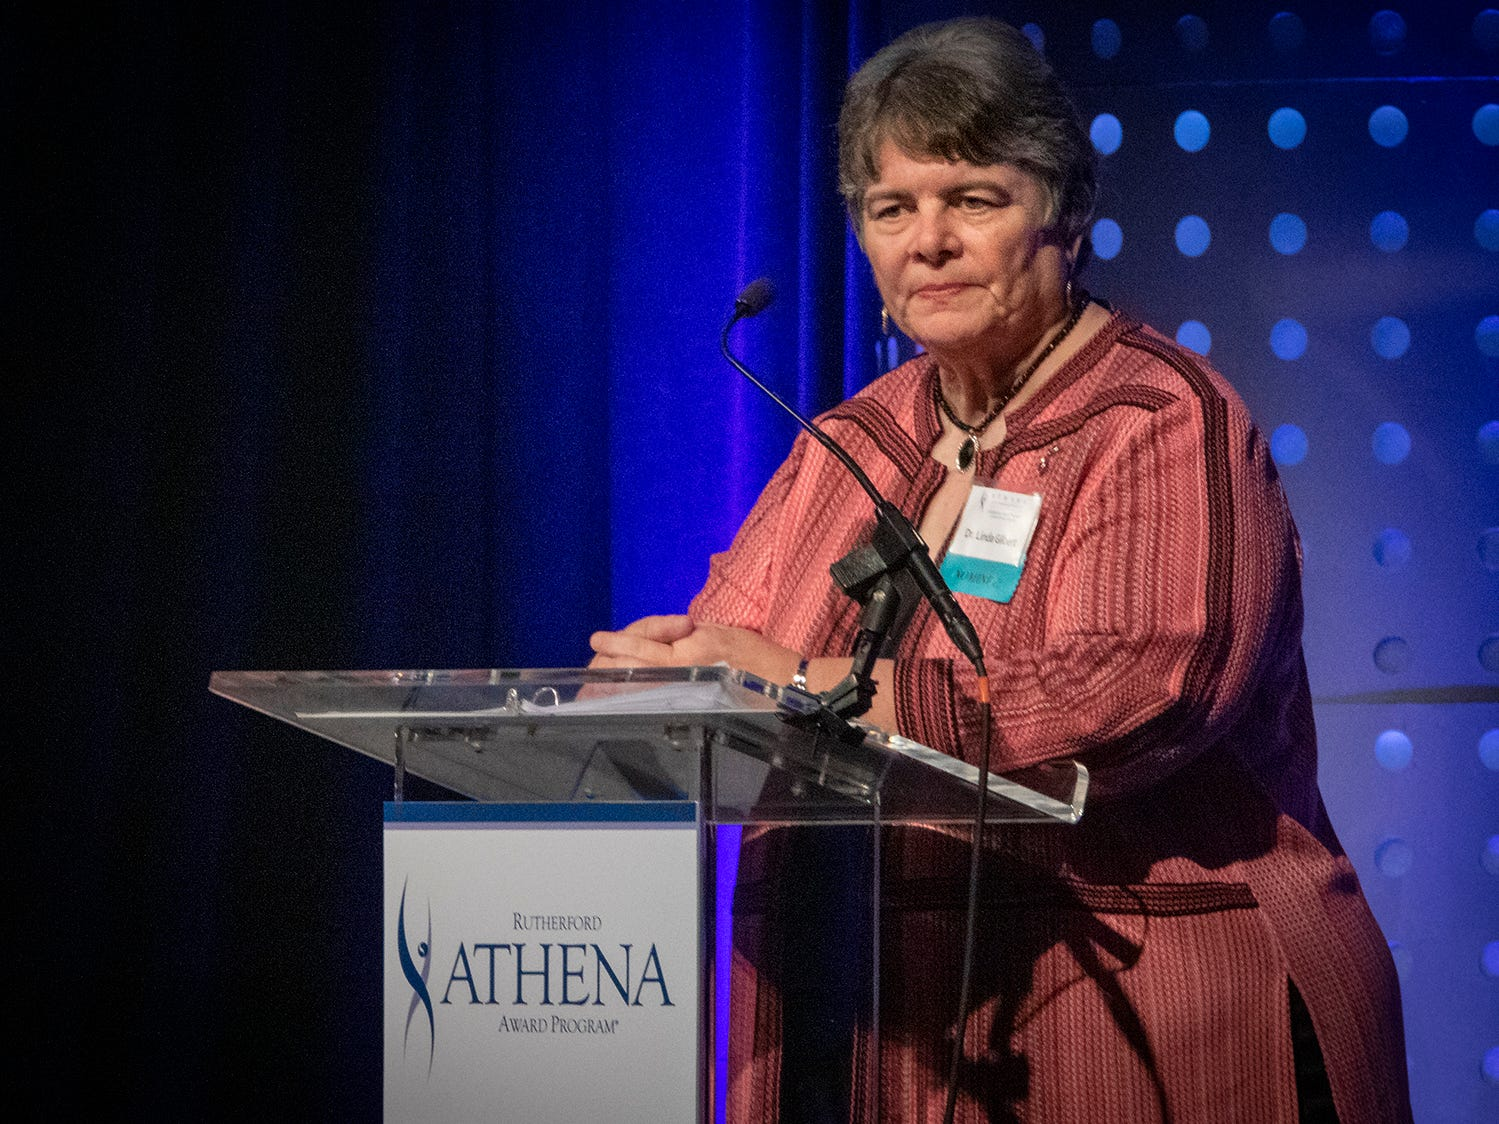 Murfreesboro City Schools Director Linda Gilbert received the 2019 ATHENA Leadership Award from Rutherford Cable Friday, April 12, 2019 at Embassy Suites Murfreesboro.